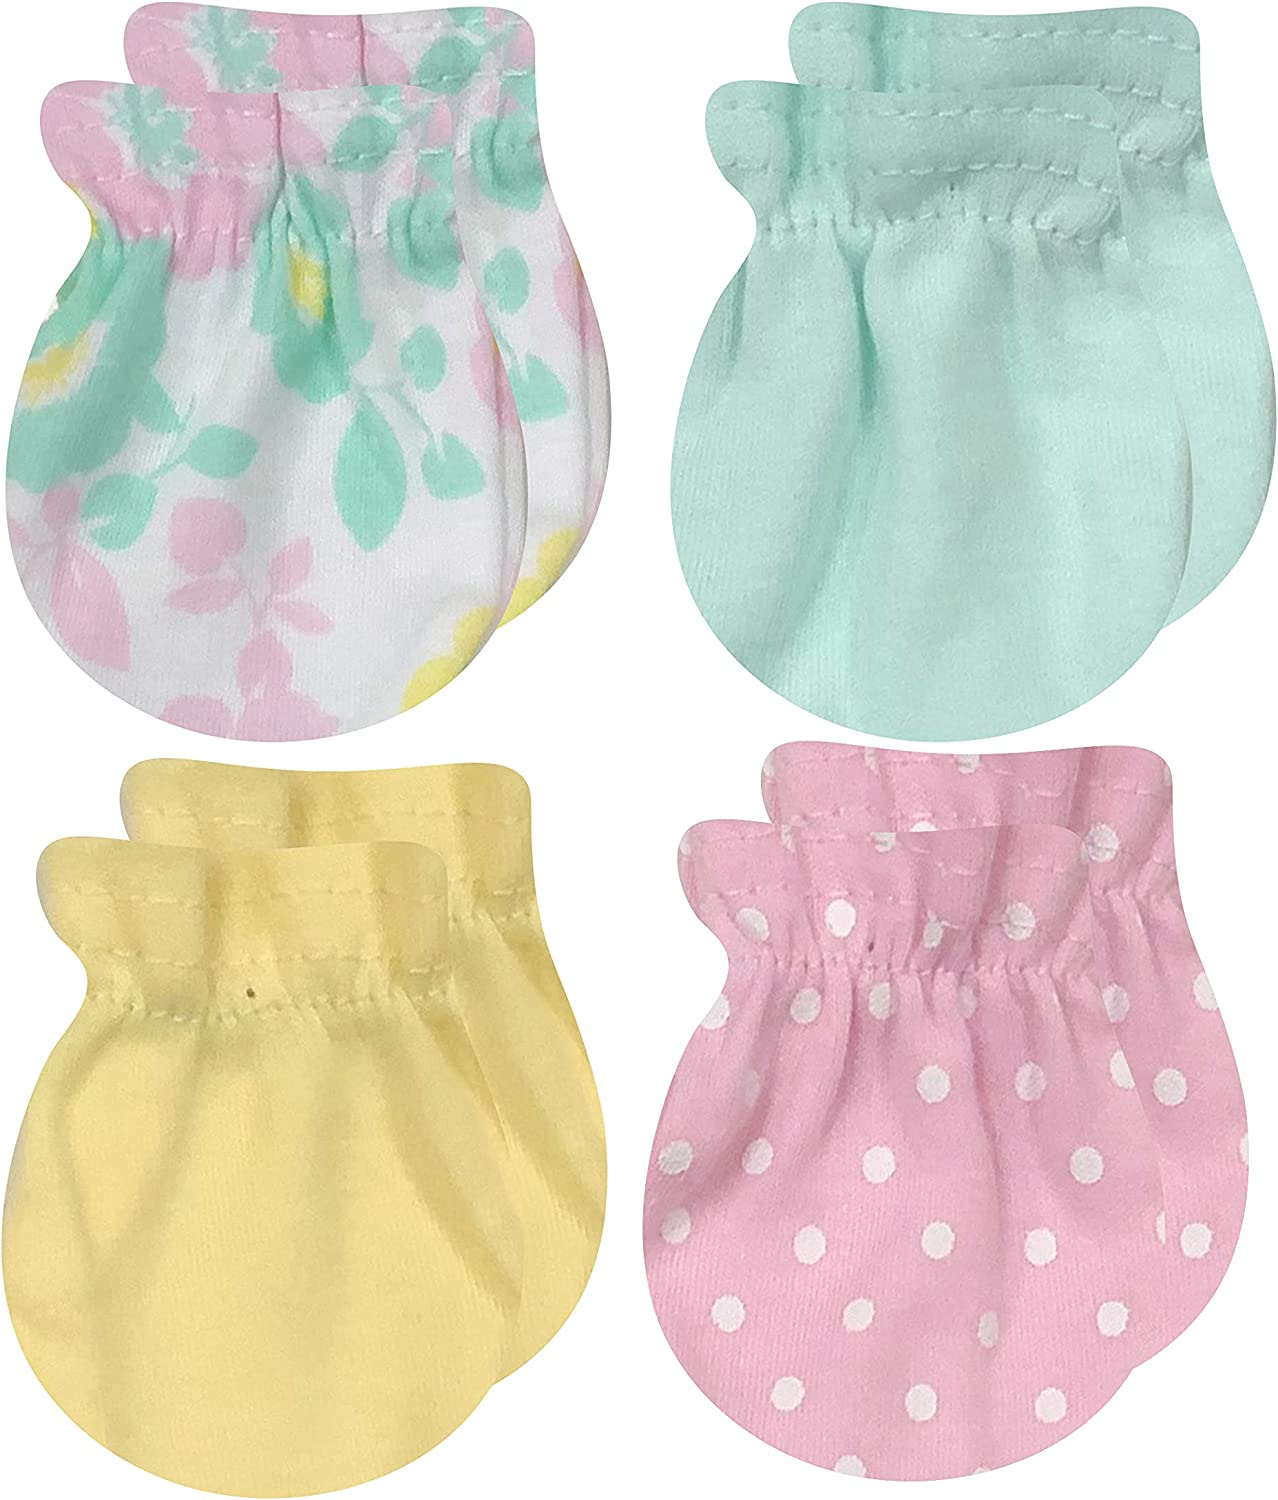 Max 63% OFF MODERN Some reservation BABY Newborn Mittens For Baby 4 0- Pack Girls Boys